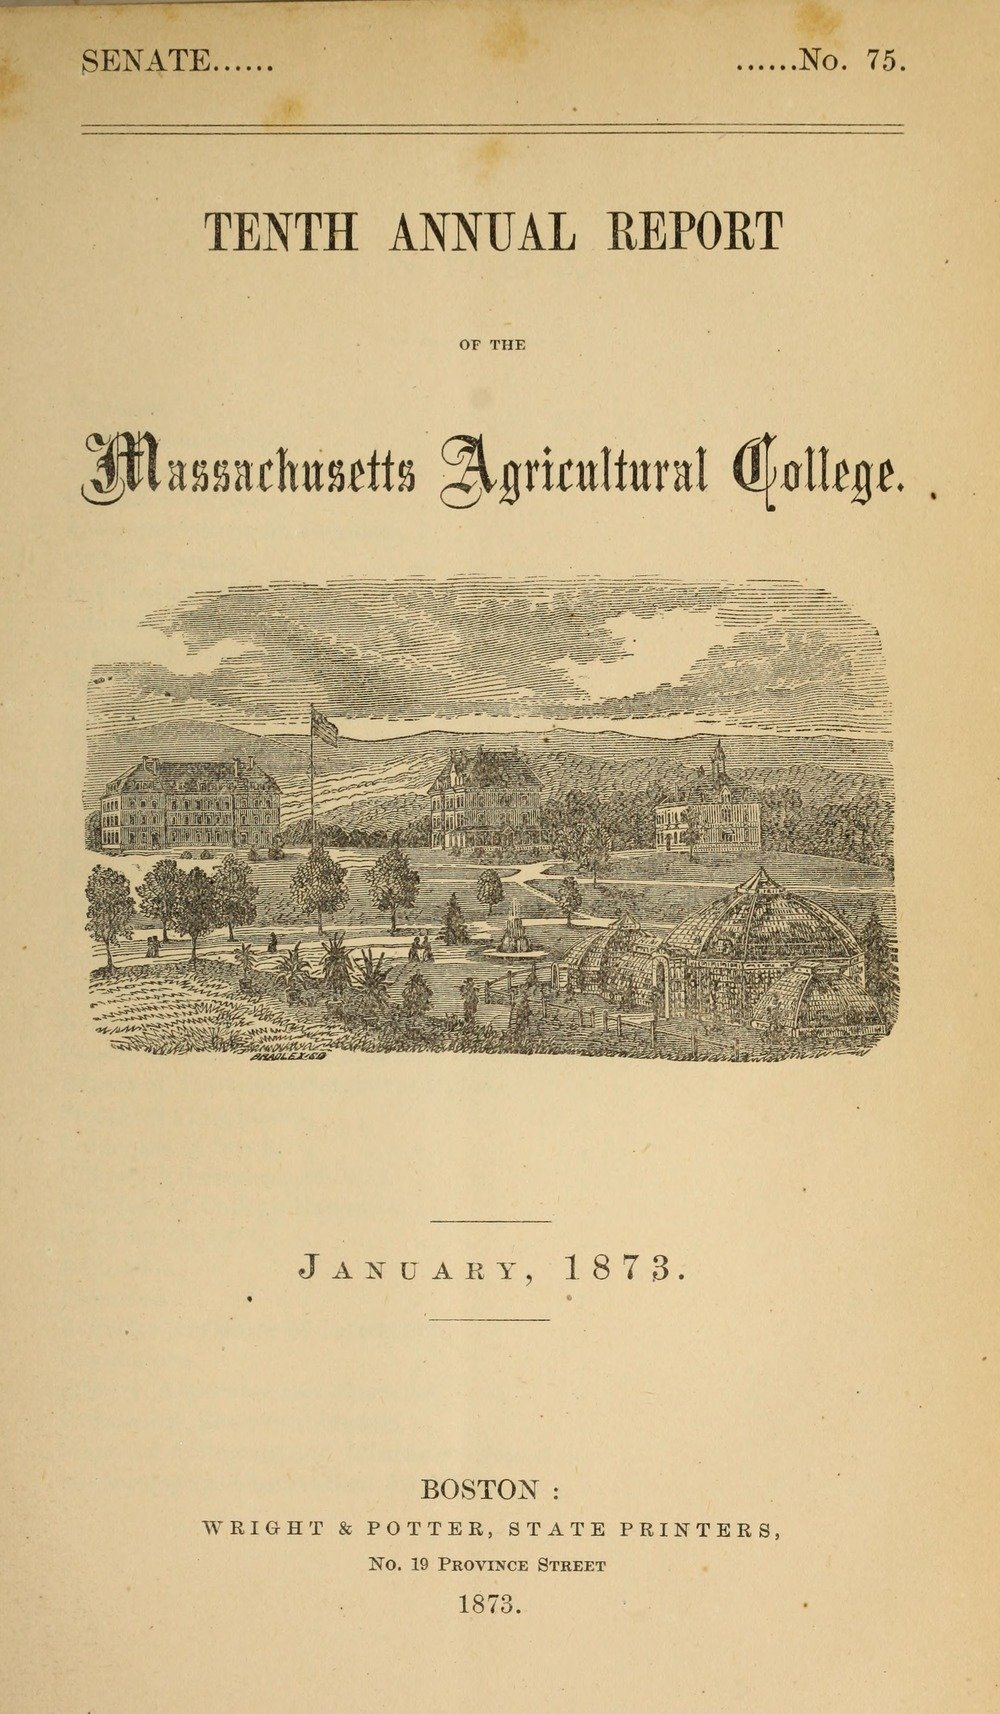 Tenth Annual Report; includes reports on agricultural experiments, the Botanic Garden, College departments, sugar beet machinery, the library and museum, 1873.